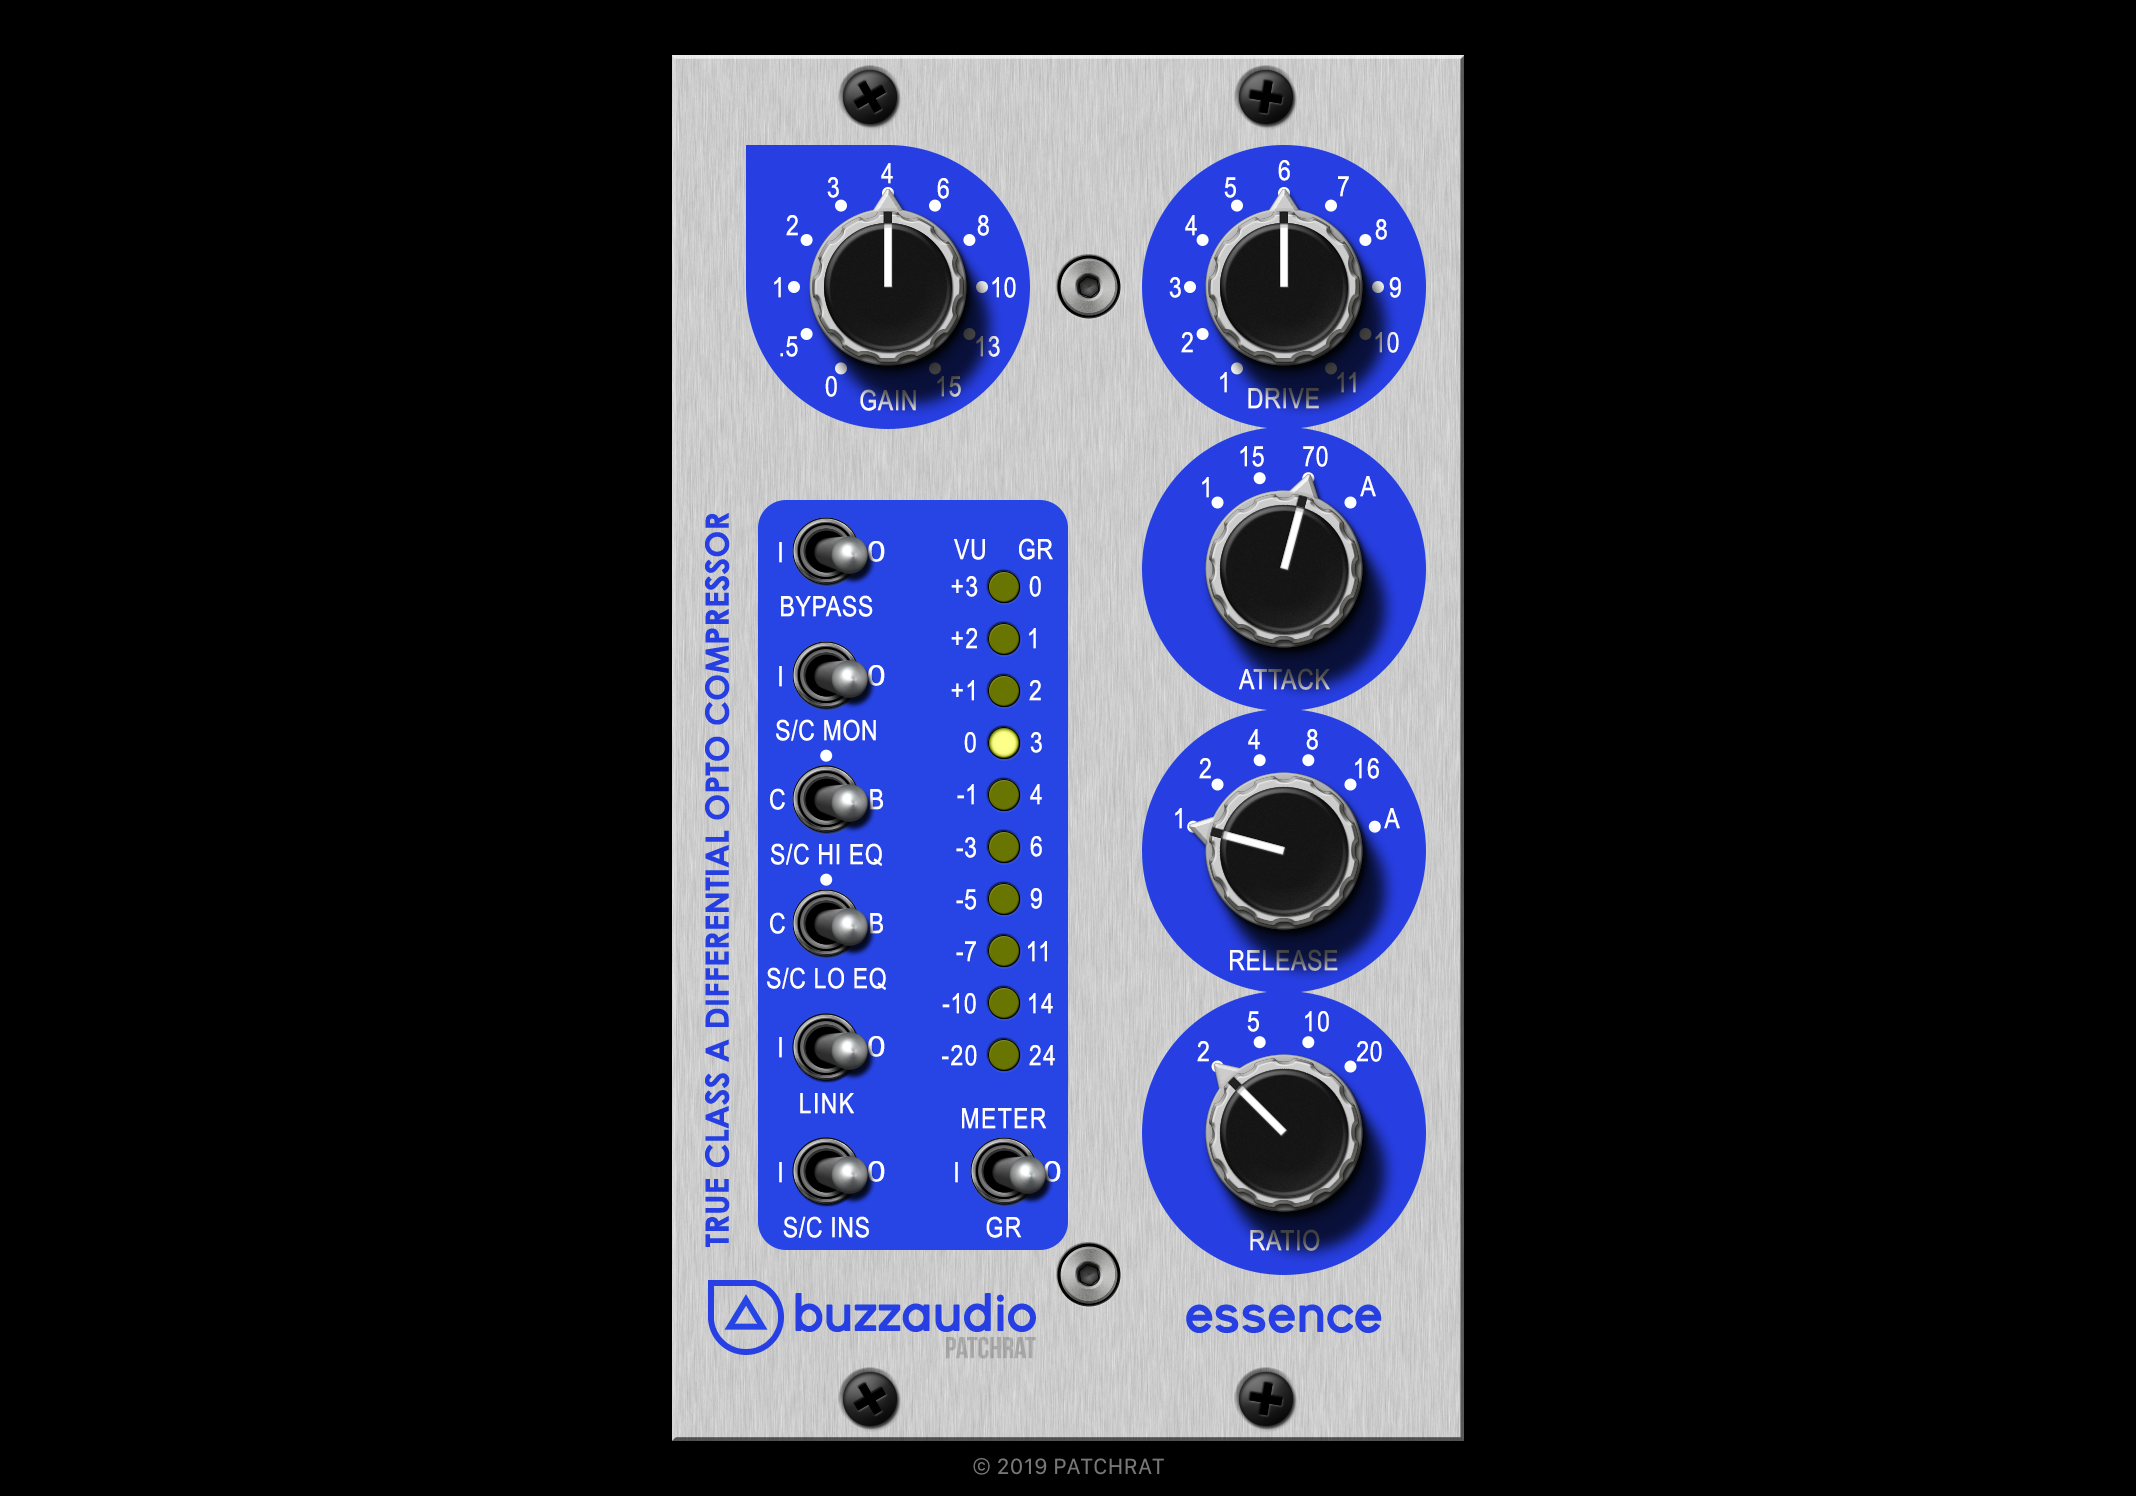 Buzz Audio Essence recall module for the Patchrat app